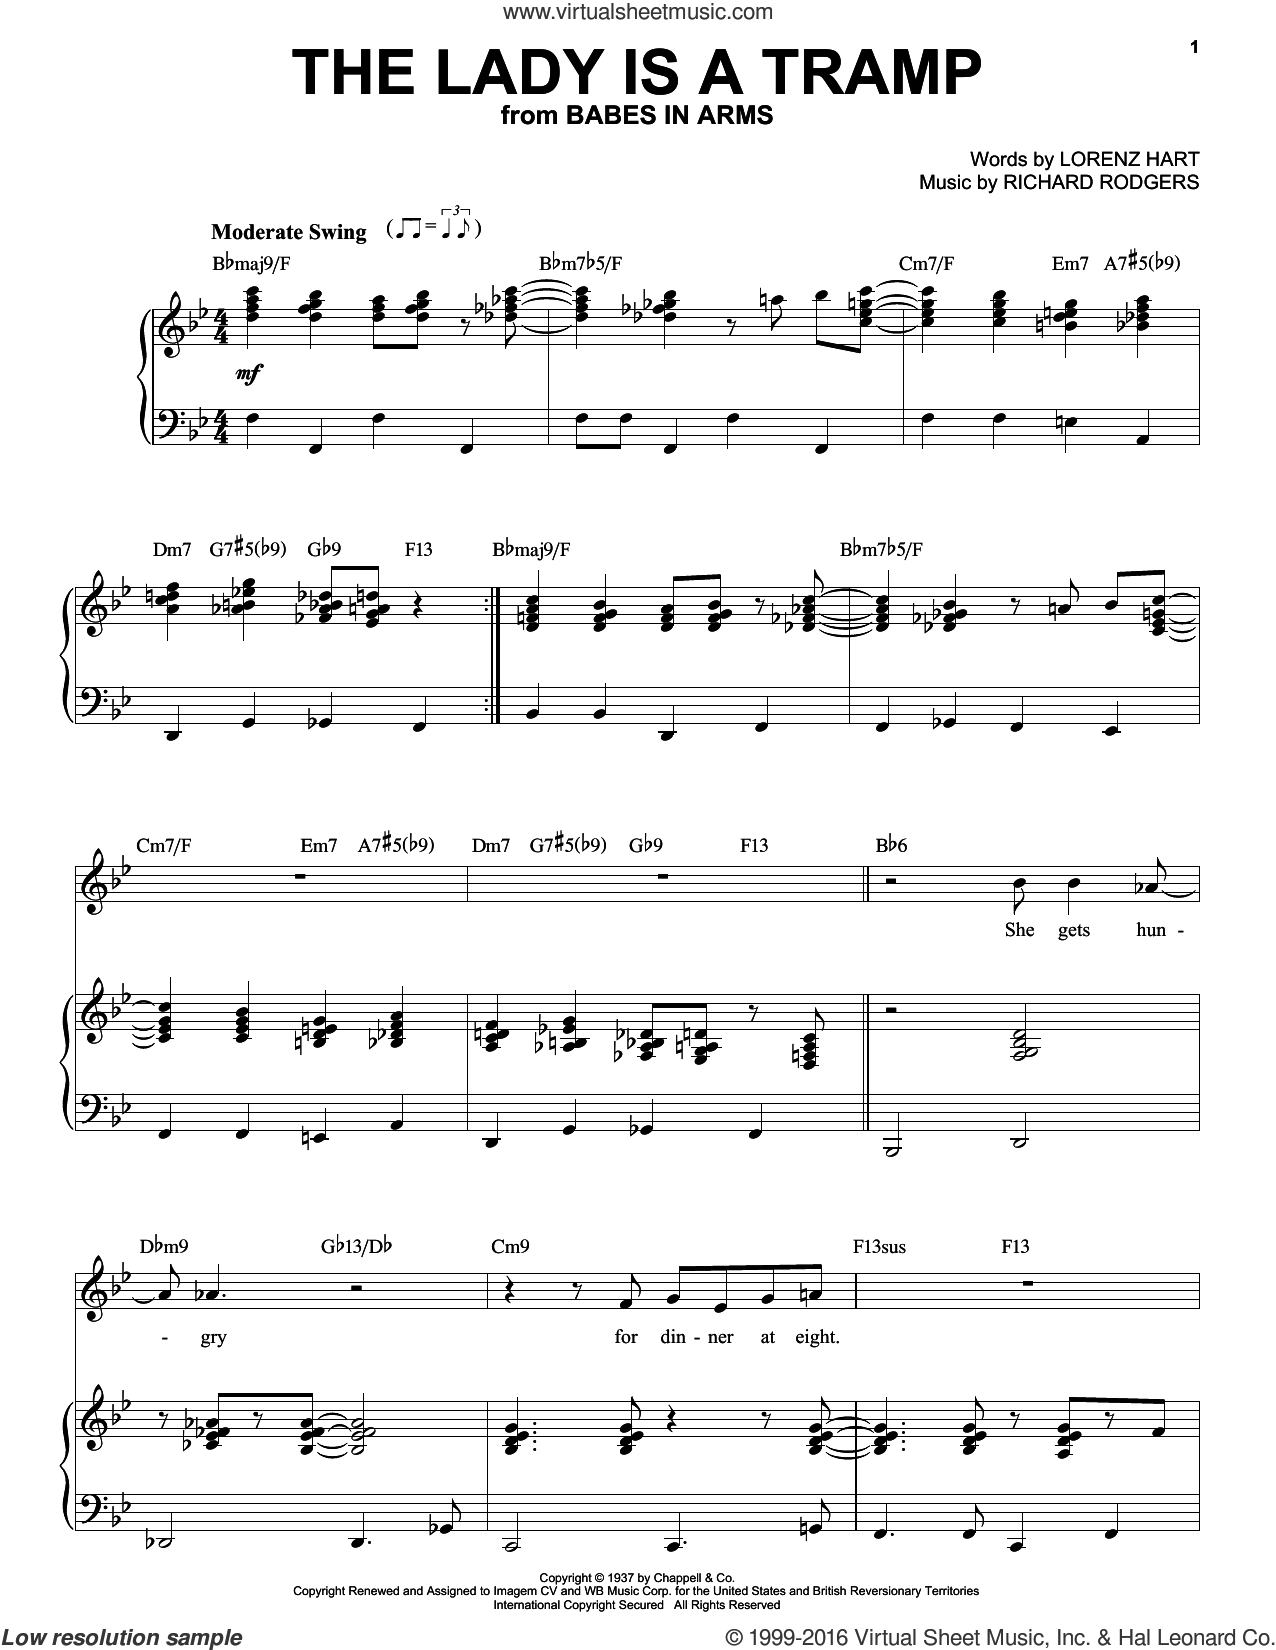 The Lady Is A Tramp sheet music for voice and piano by Frank Sinatra, Babes In Arms (Musical), Ella Fitzgerald, Lena Horne, Rodgers & Hart, Lorenz Hart and Richard Rodgers, intermediate skill level